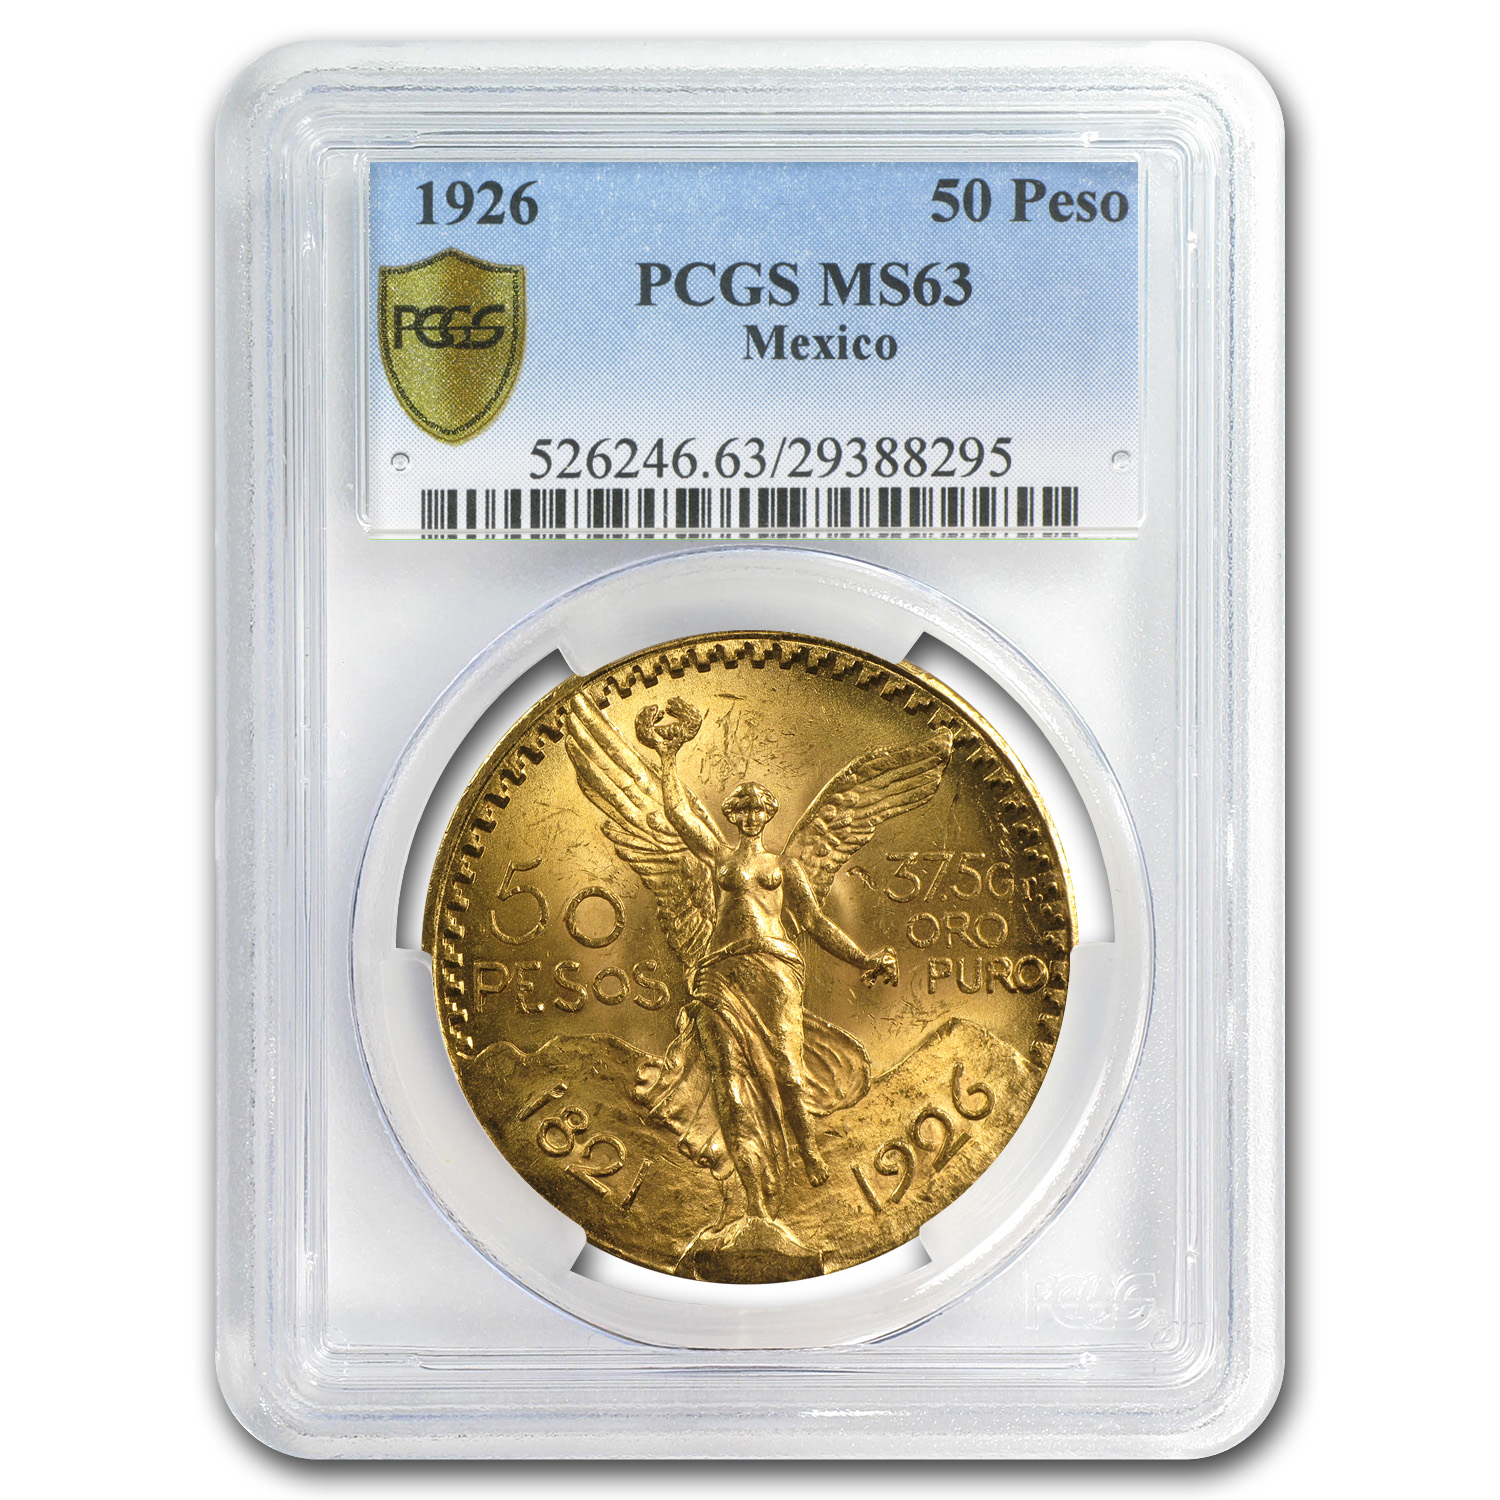 Mexico 1926 50 Pesos Gold MS-63 PCGS